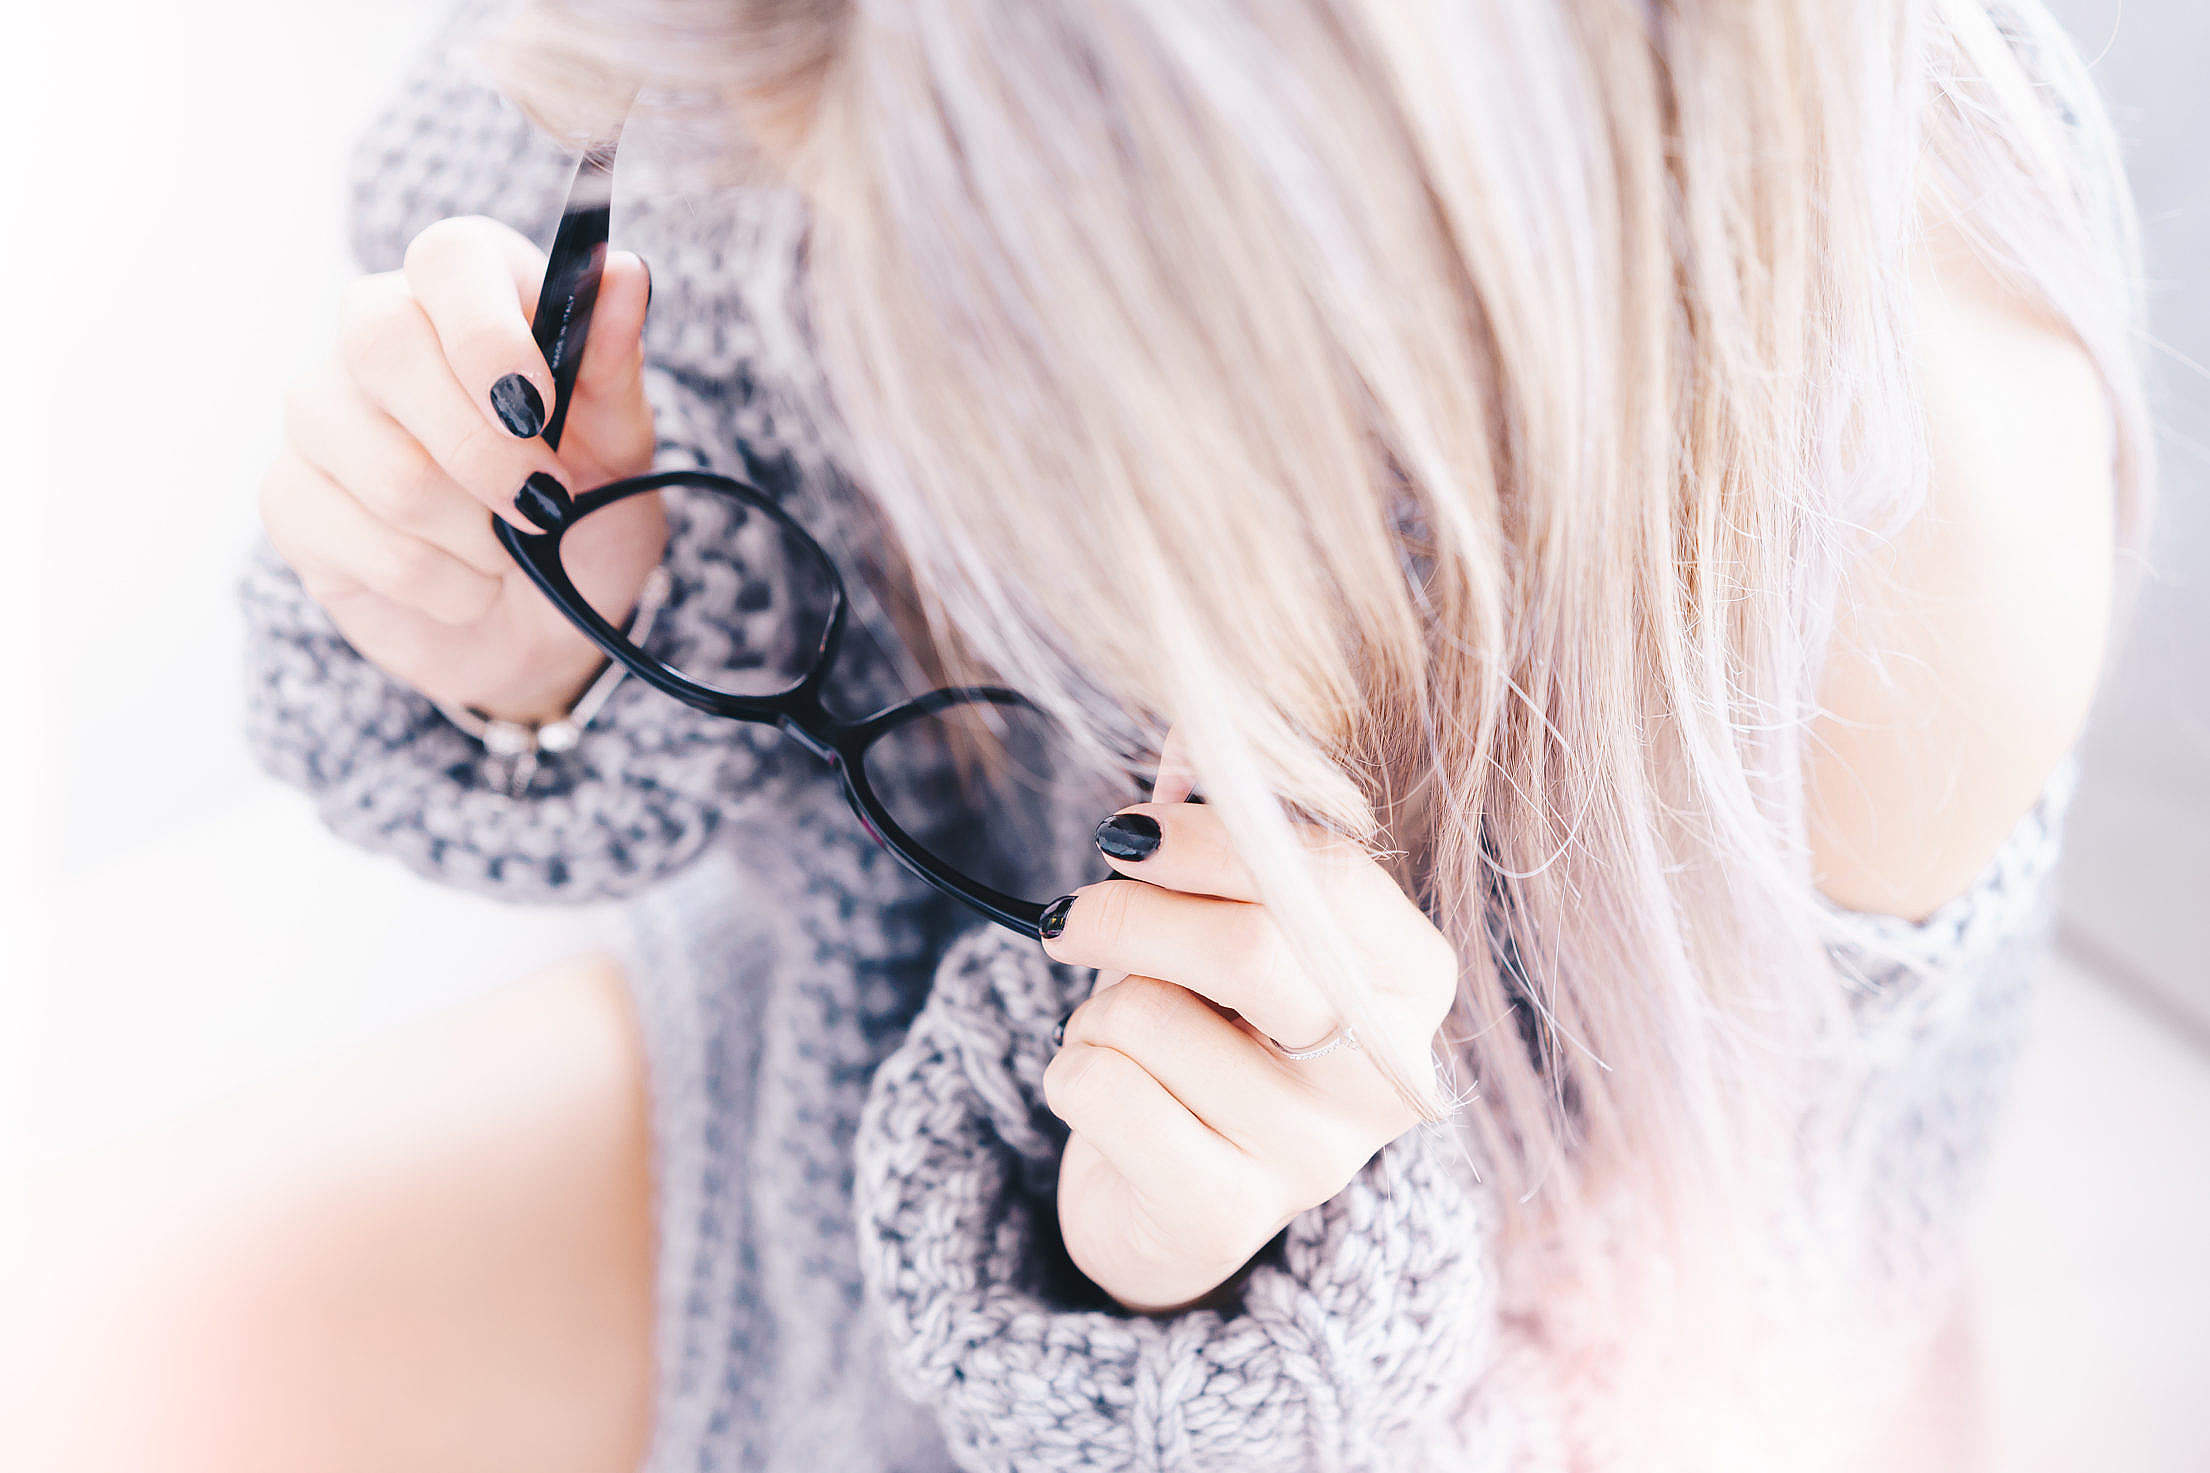 Woman With Black Glasses in Optical Store Free Stock Photo